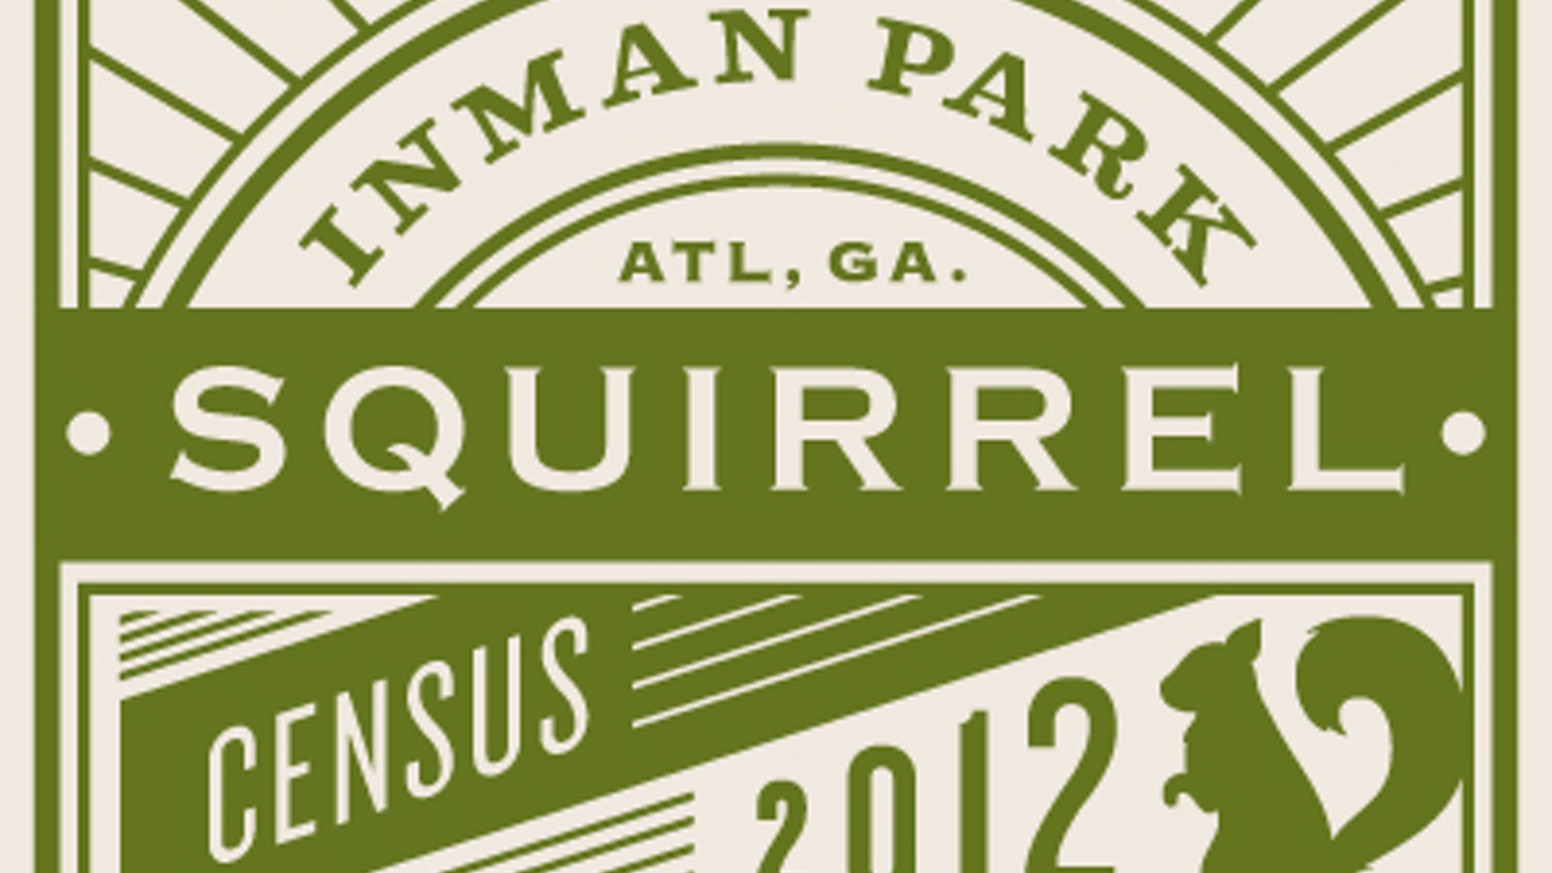 We count squirrels and present our findings to the public.